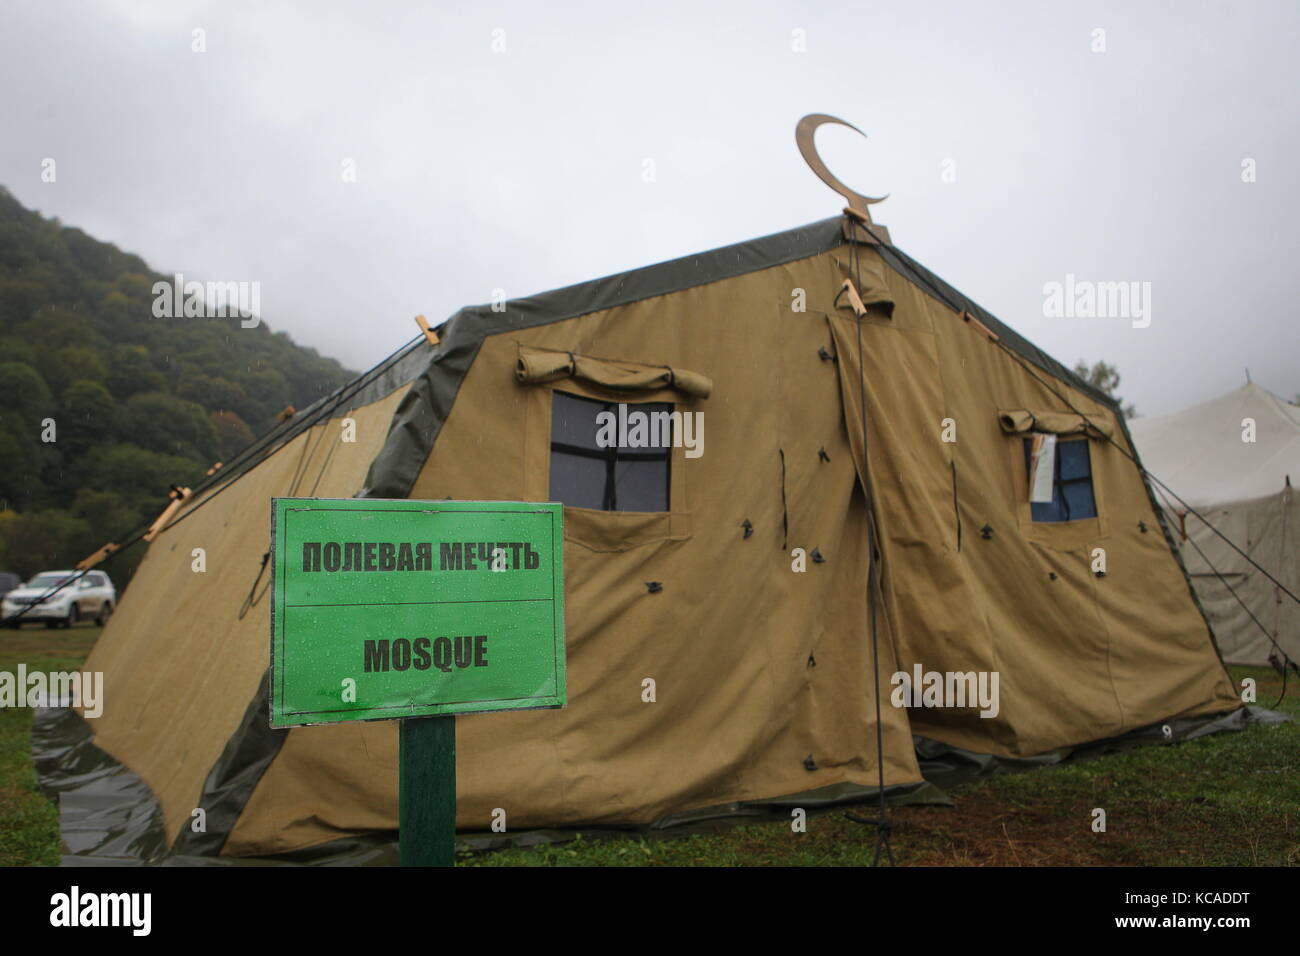 Karachay Cherkessia Russia. 3rd Oct 2017. A tent used as a mosque & Karachay Cherkessia Russia. 3rd Oct 2017. A tent used as a ...